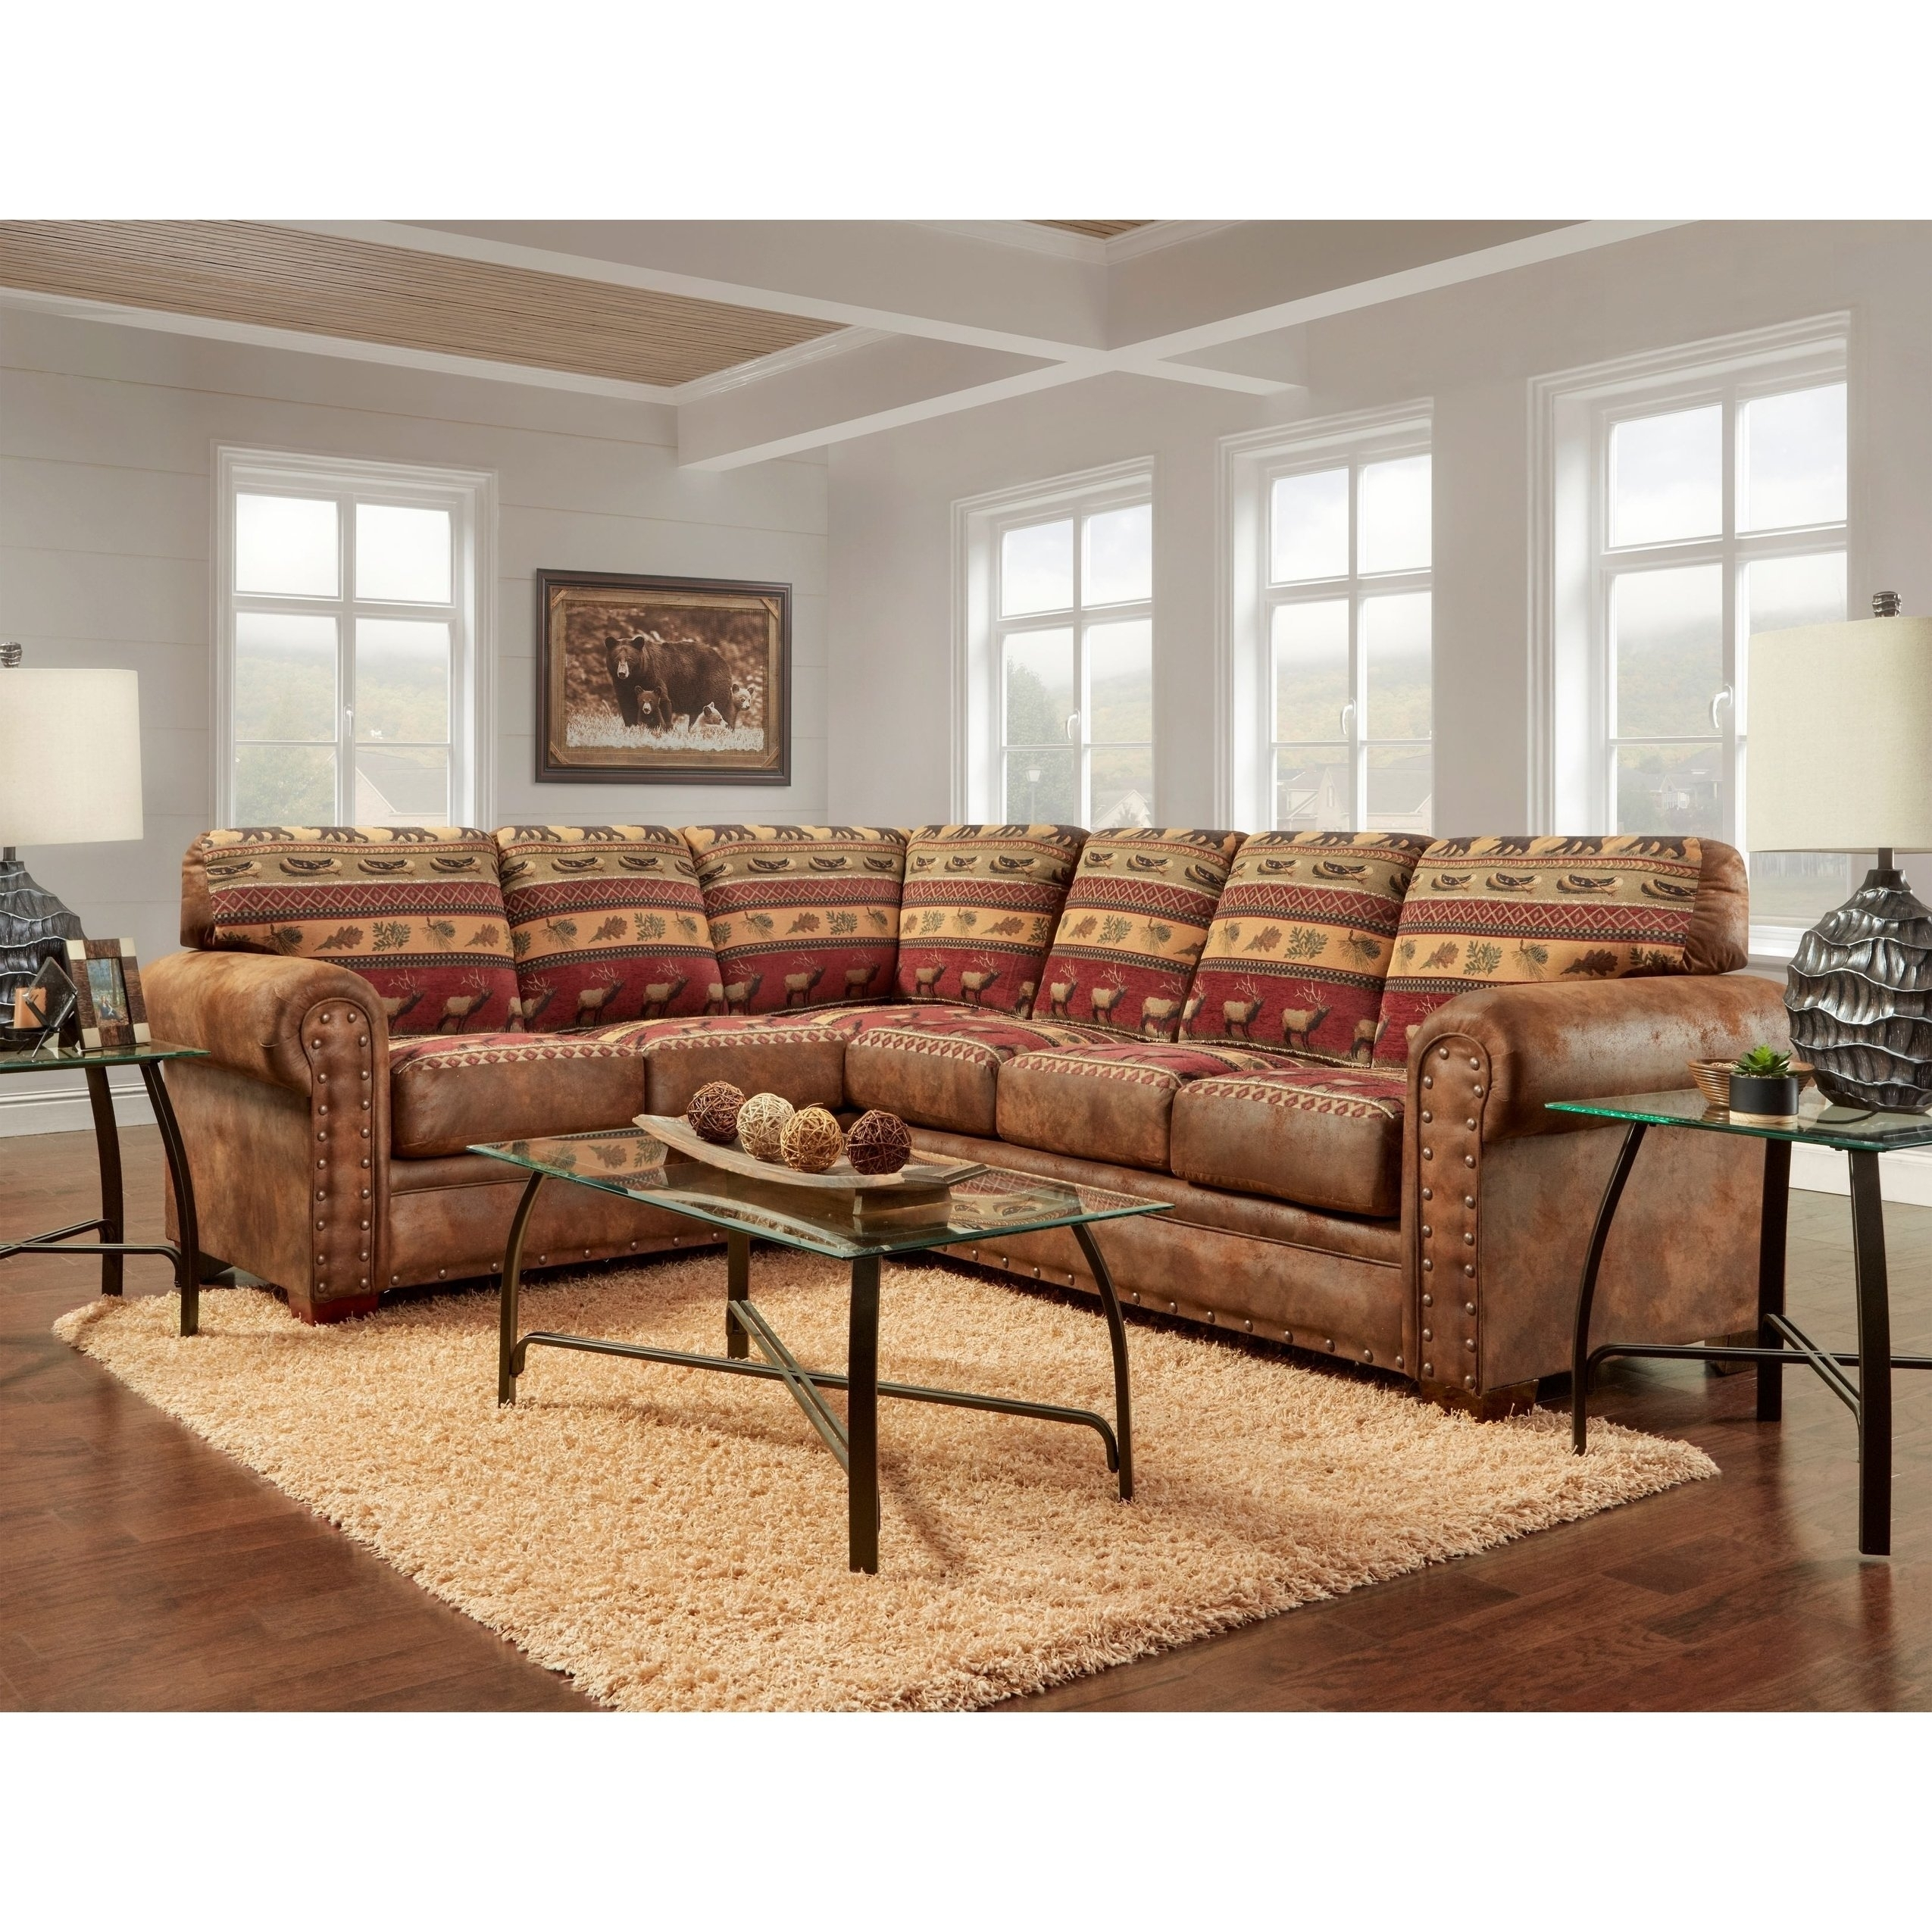 Shop American Furniture Classics Model B1650K Sierra Lodge Two Piece Pertaining To Sierra Foam Ii 3 Piece Sectionals (Image 22 of 25)